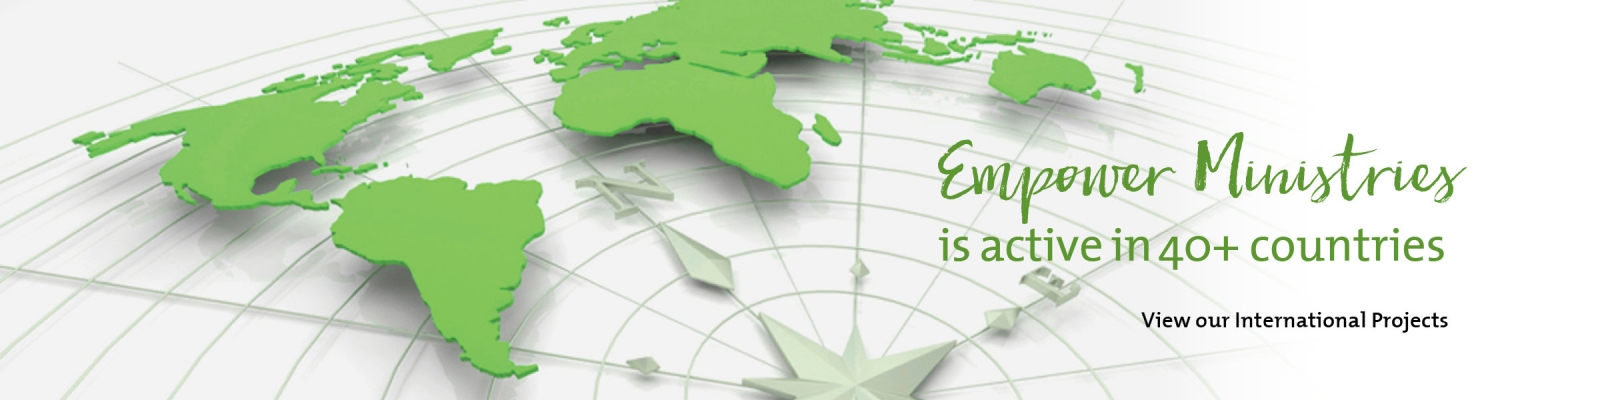 Empower works, hotspots international